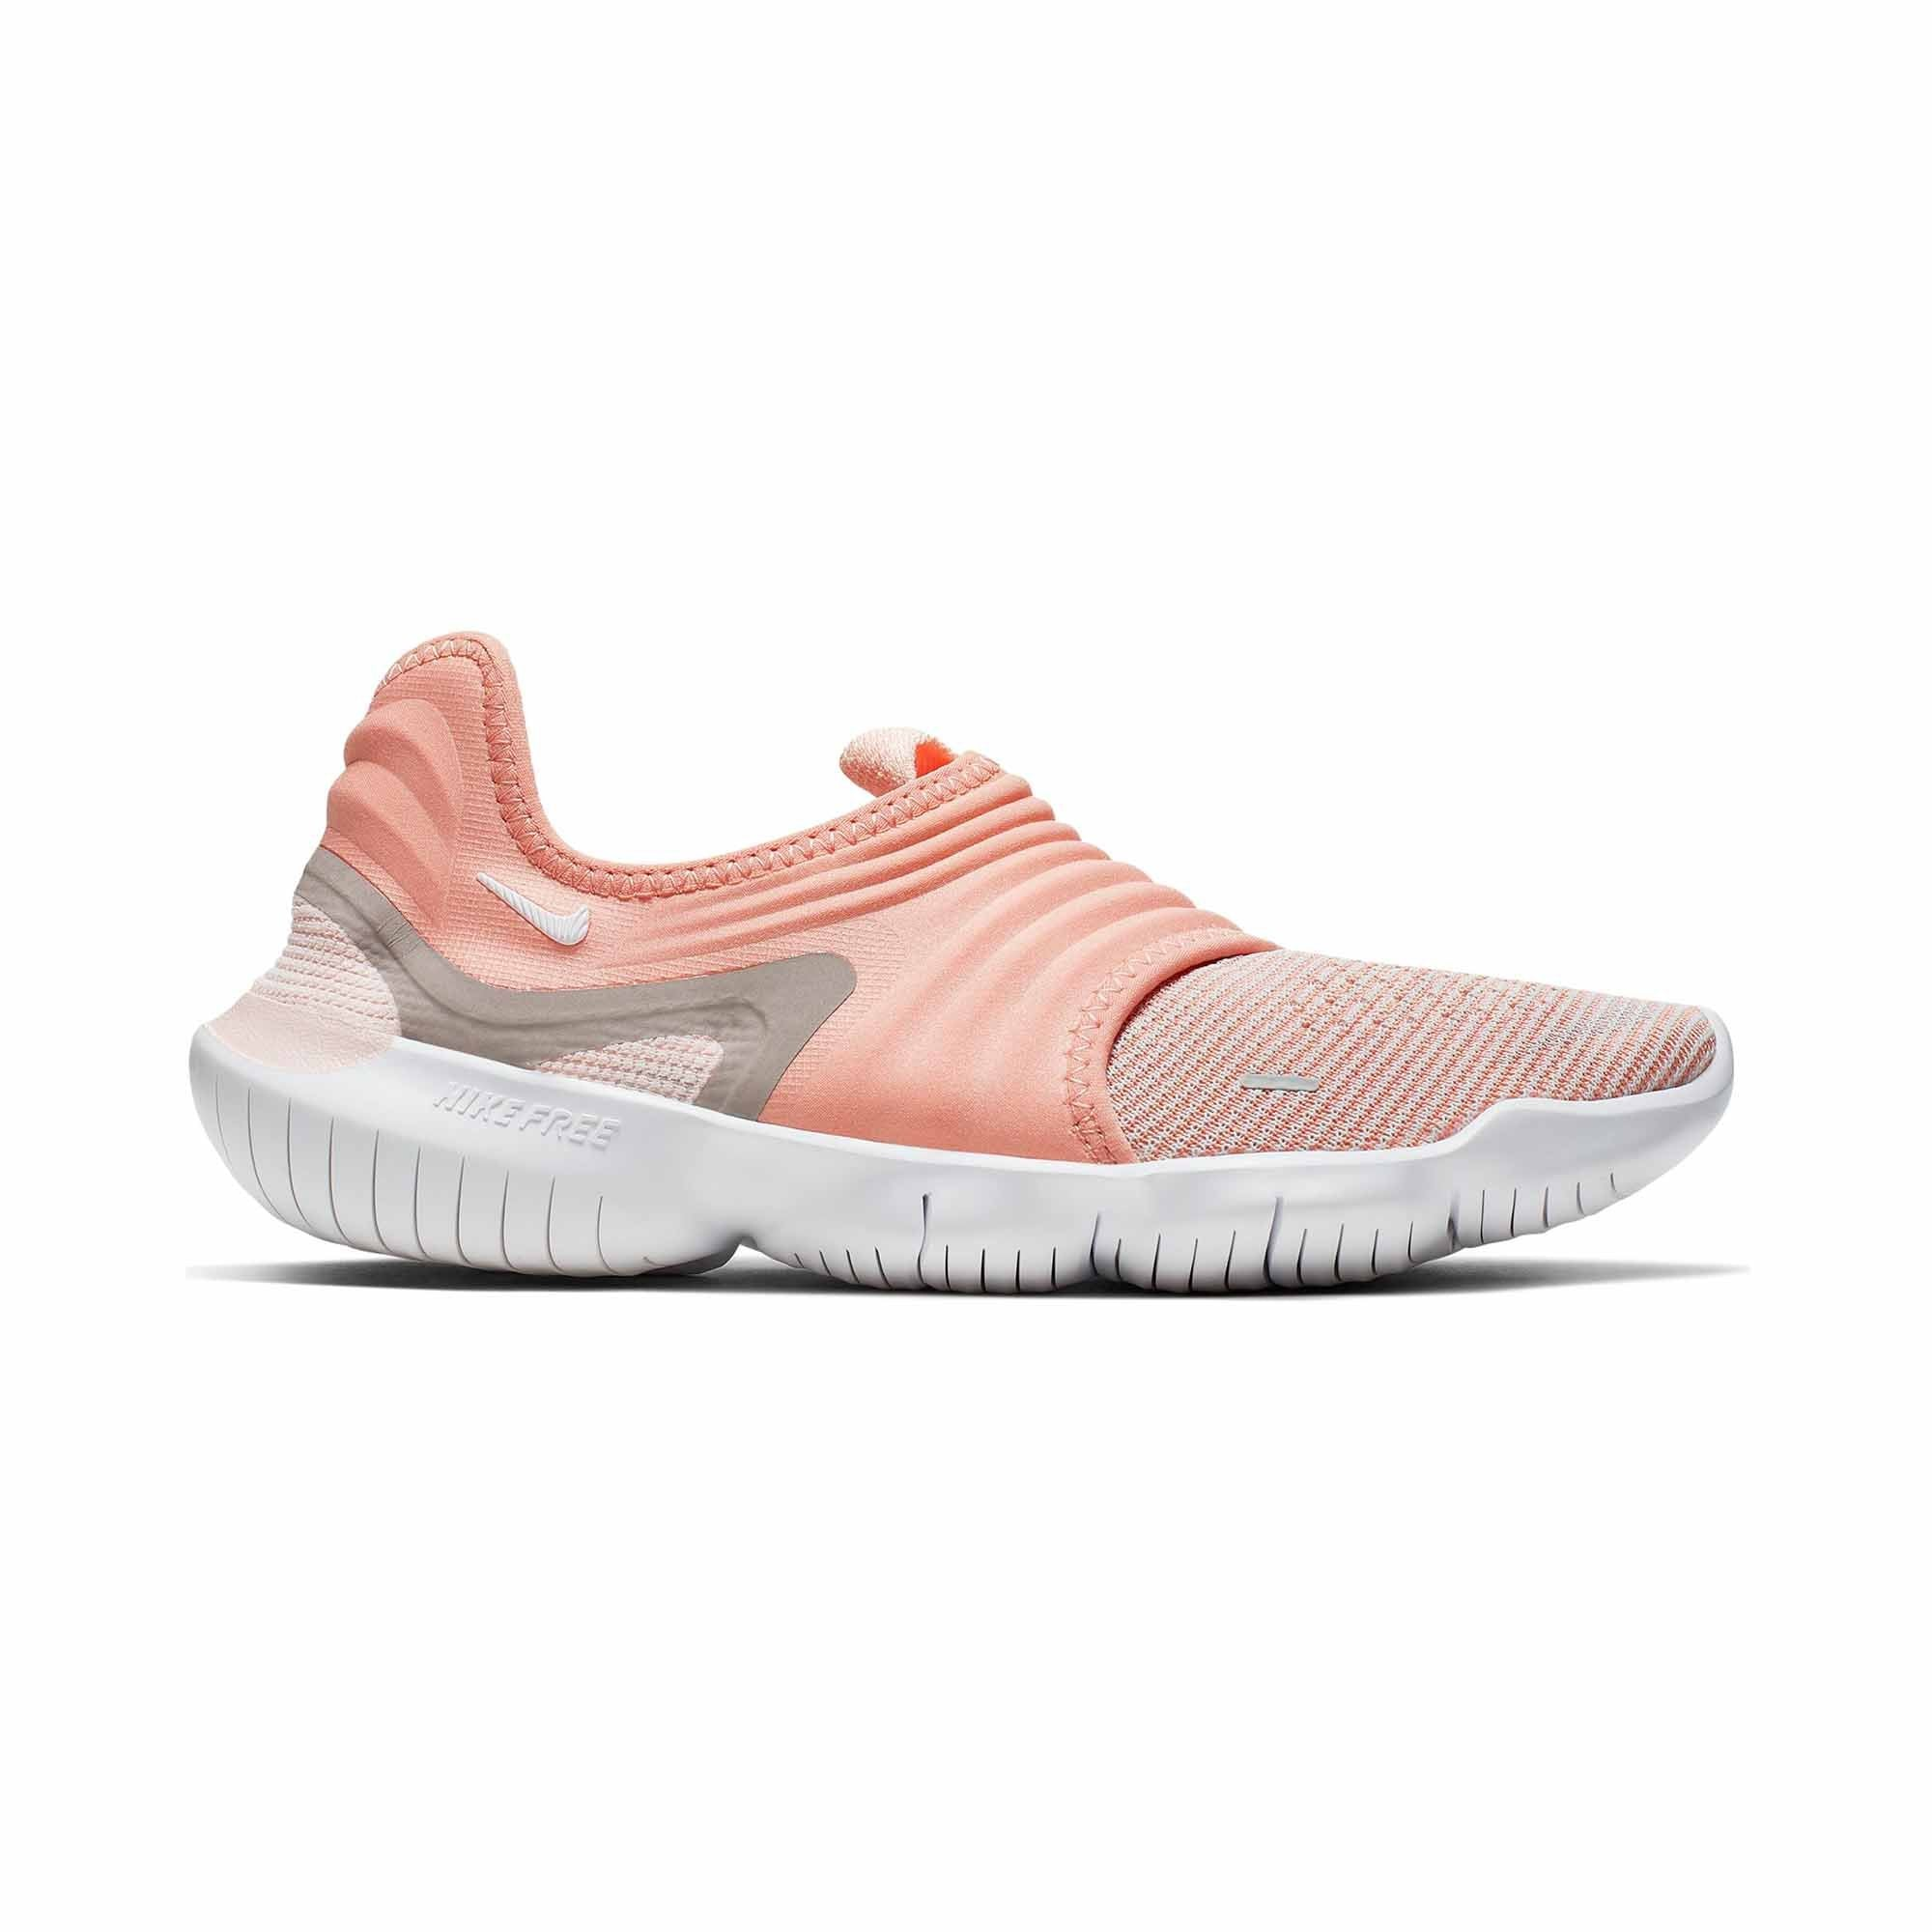 online store dd4c4 ecaff Buy Nike Women Free RN Flyknit 3.0 Running Shoes Online in Singapore |  Royal Sporting House